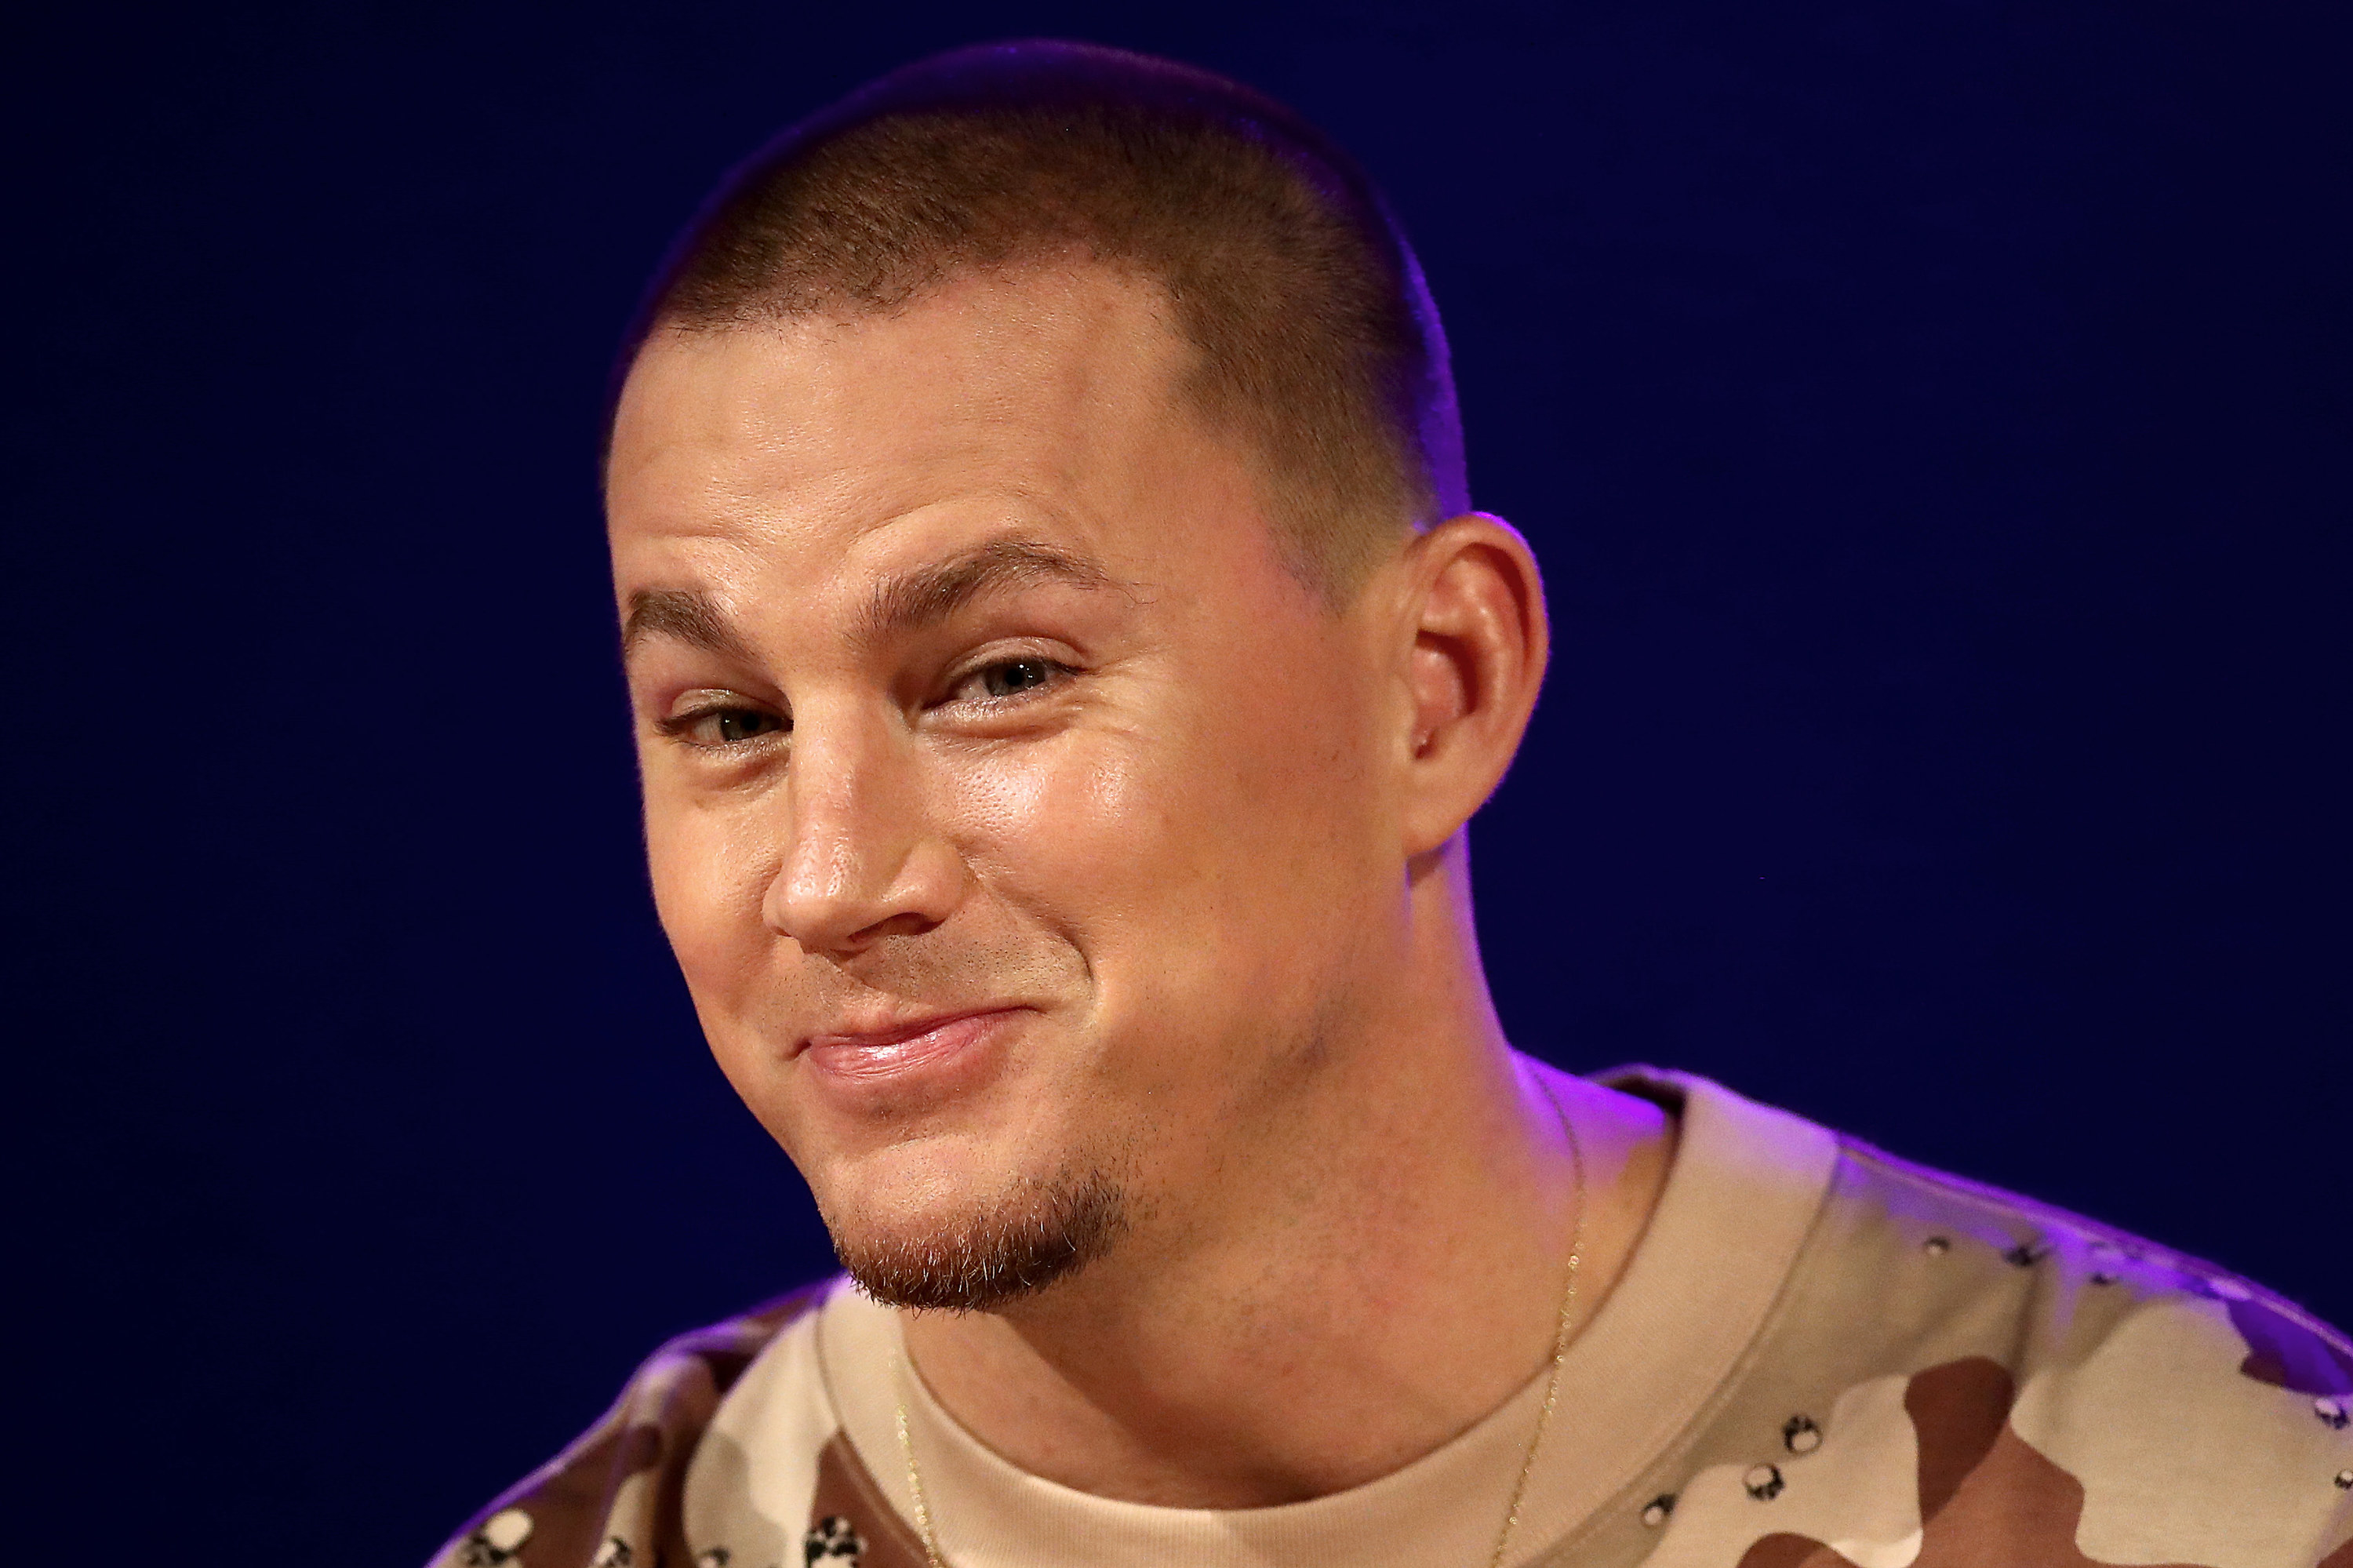 Channing smirks during an appearance